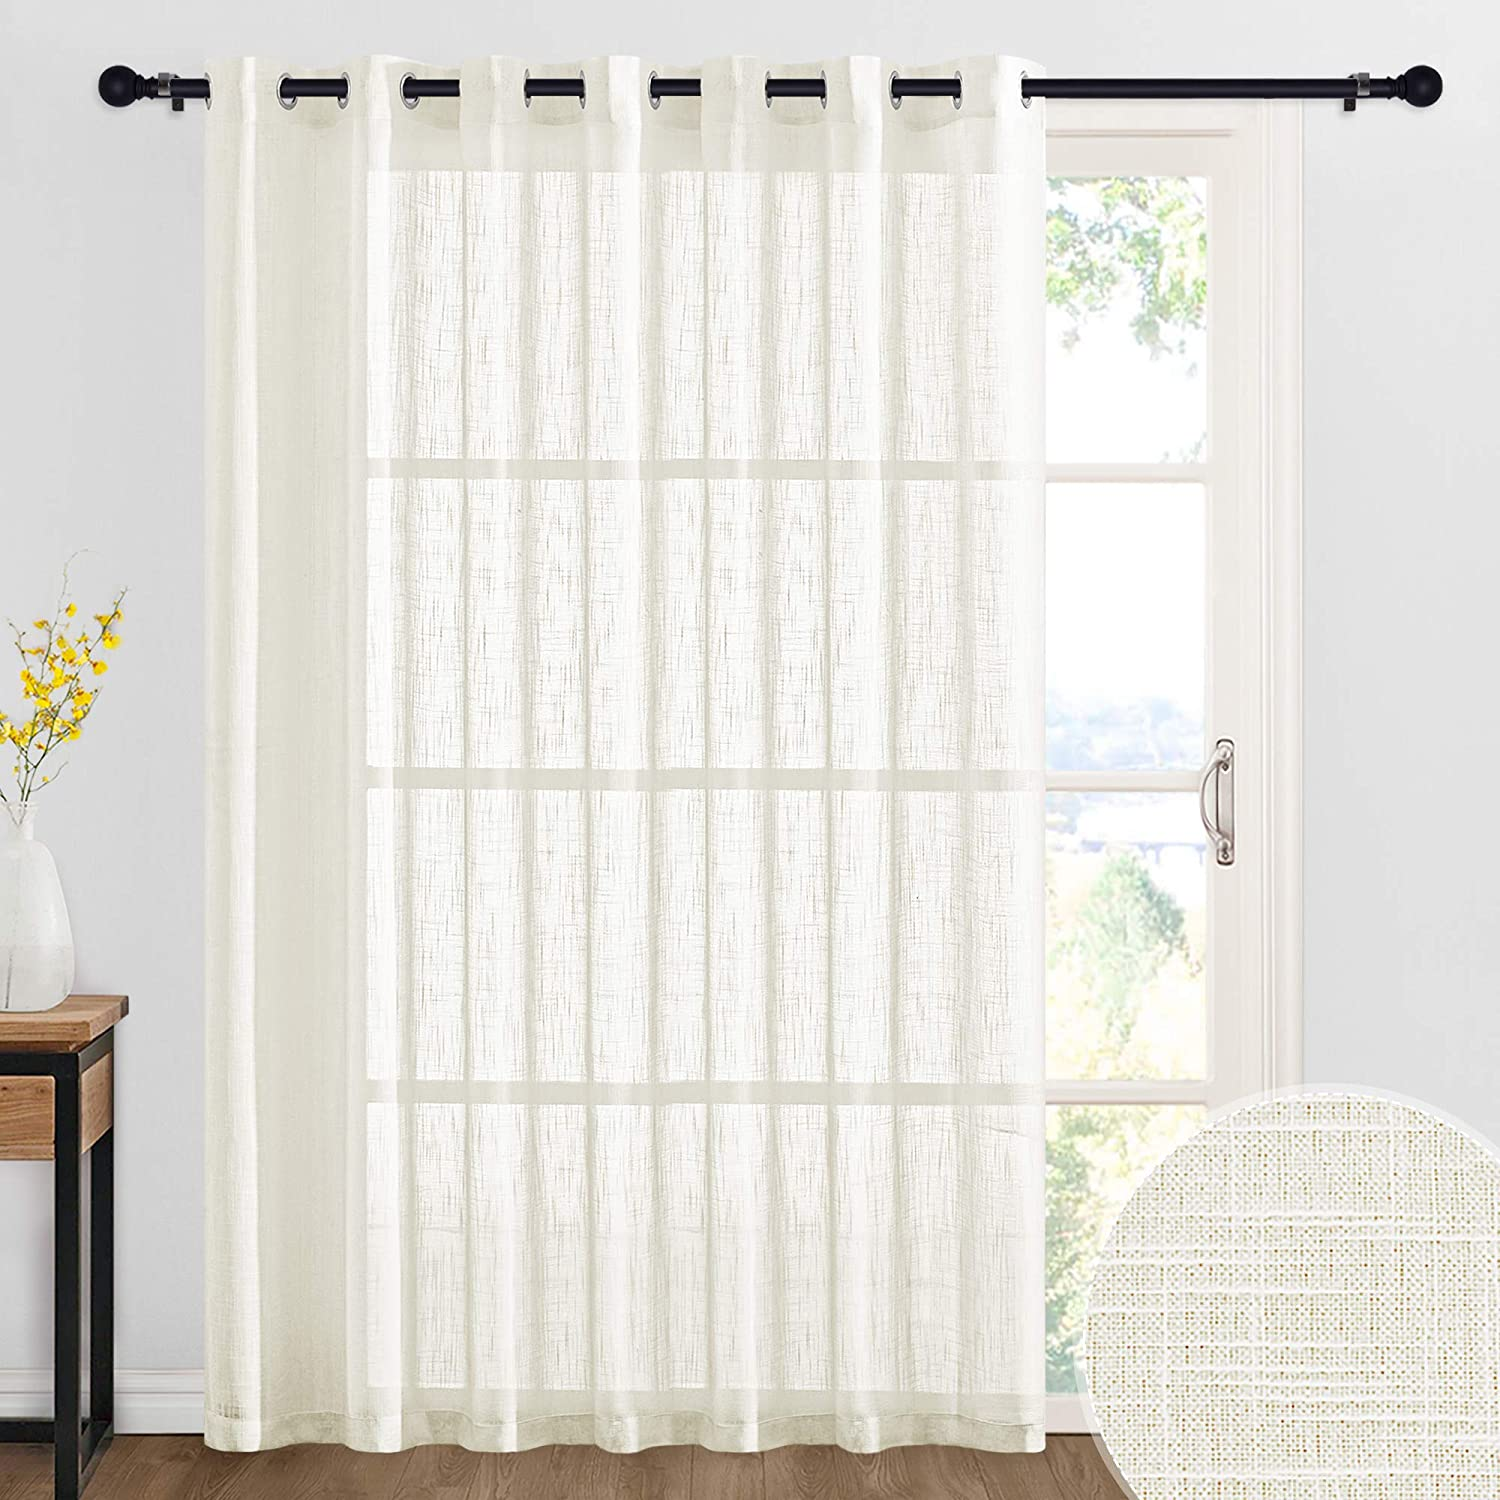 RYB HOME Curtains for Large Window Decor Linen Textured Semi Sheer Privacy Curtains for Bedroom Living Room Sheer Backdrop Canopy Bed Curtains, W 100 x L 84 inch, 1 Panel, Natural